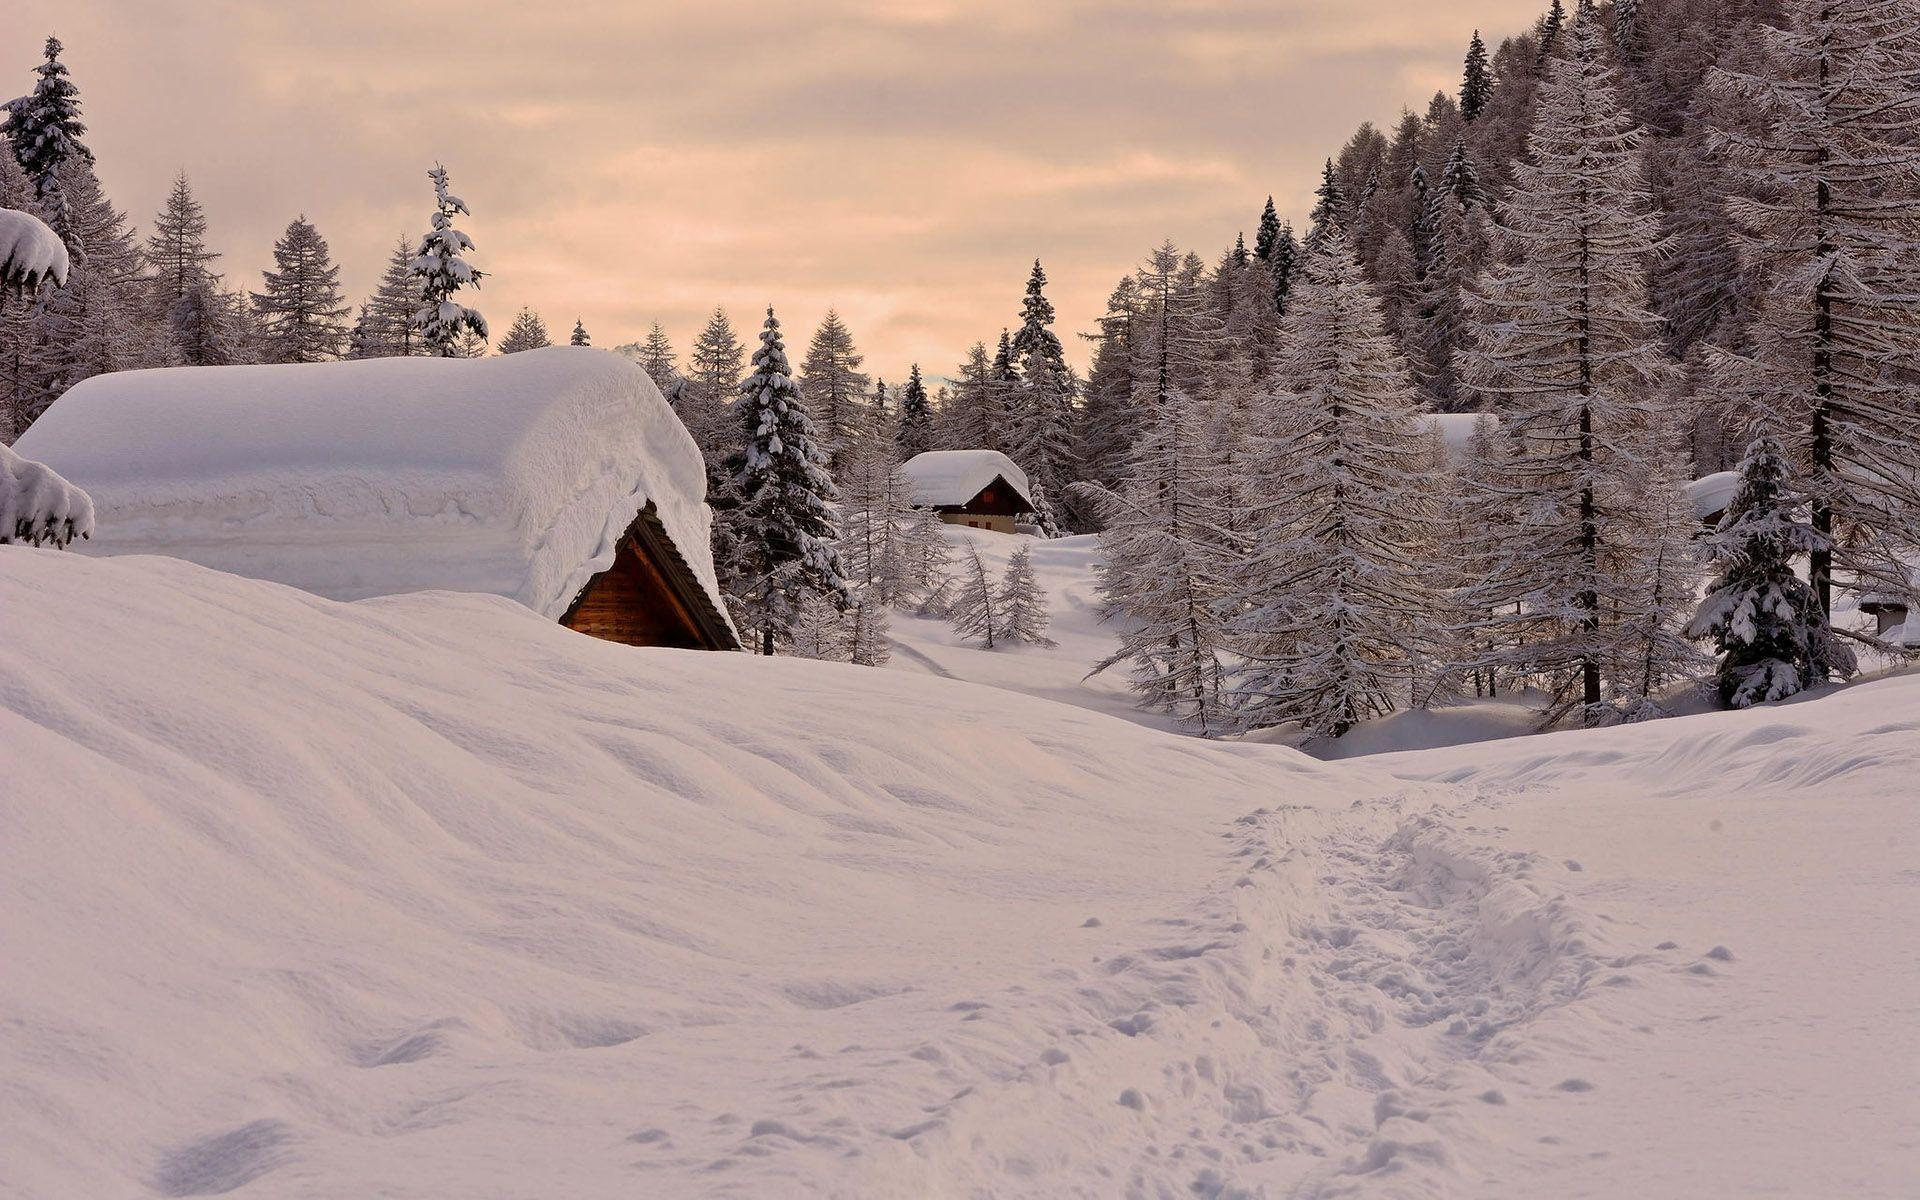 HD Cabin buried under the snow Wallpaper  Download Free